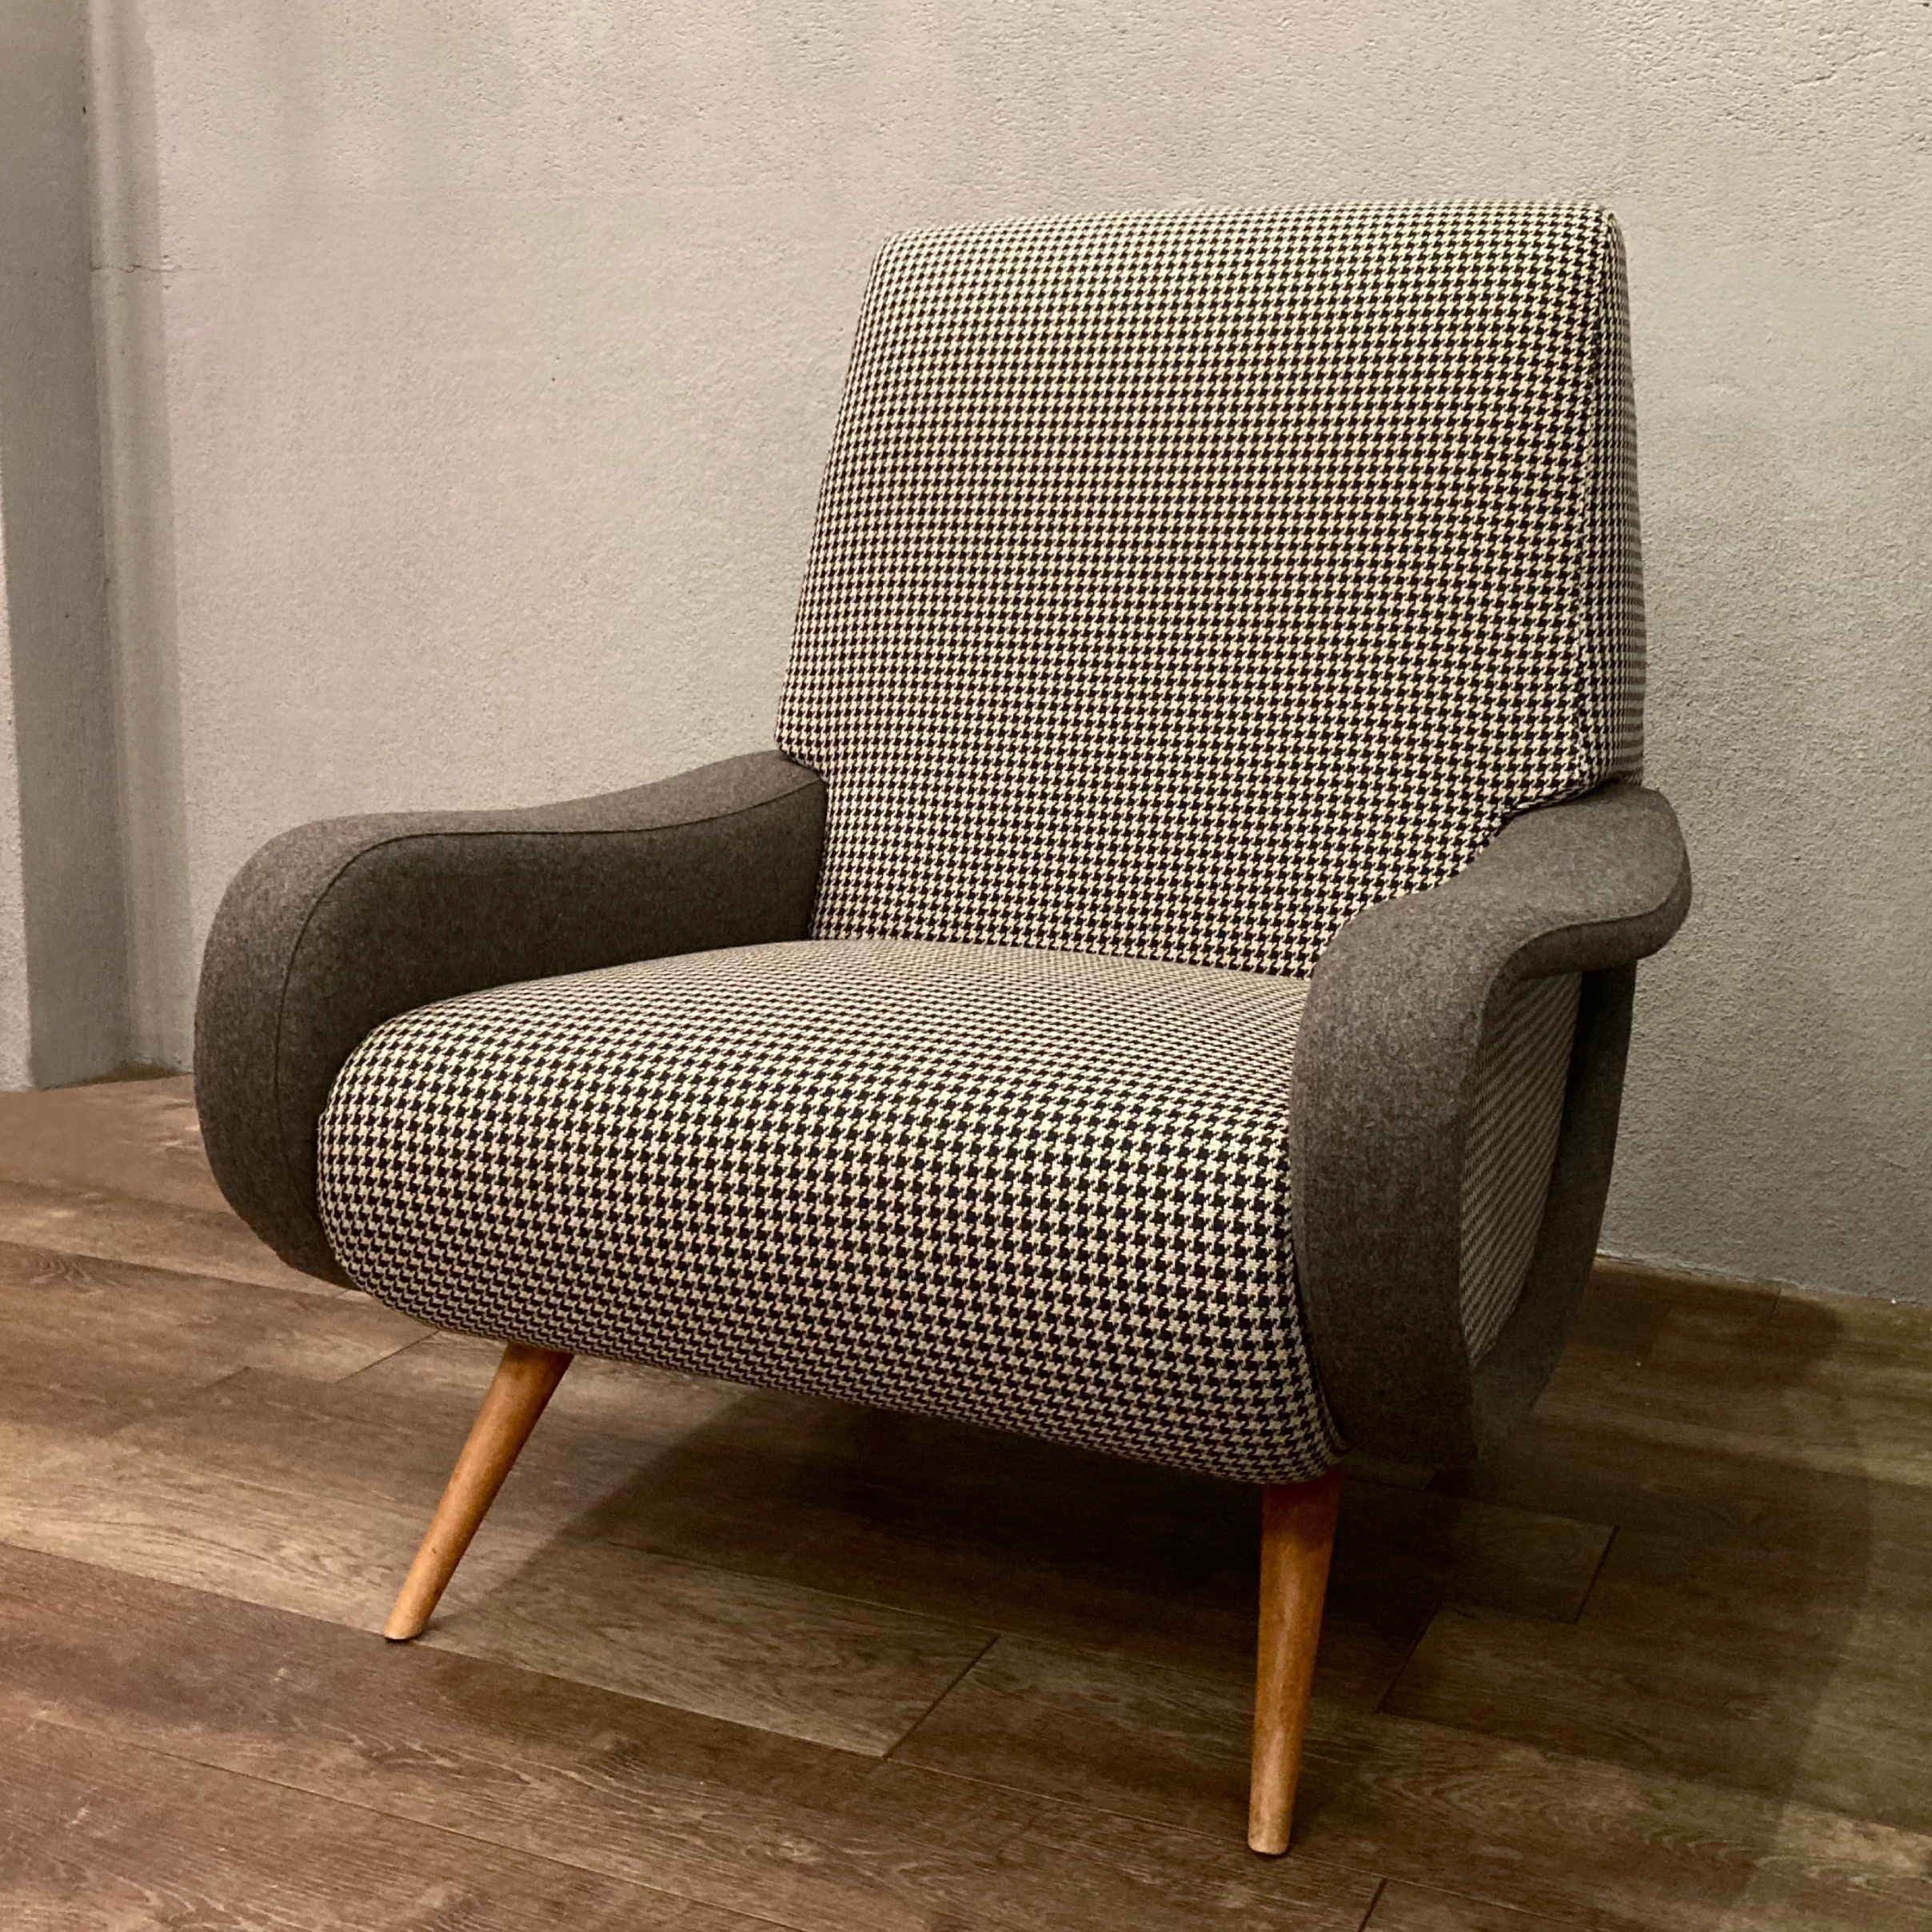 1950's Italy Lounge Chair <Inspired